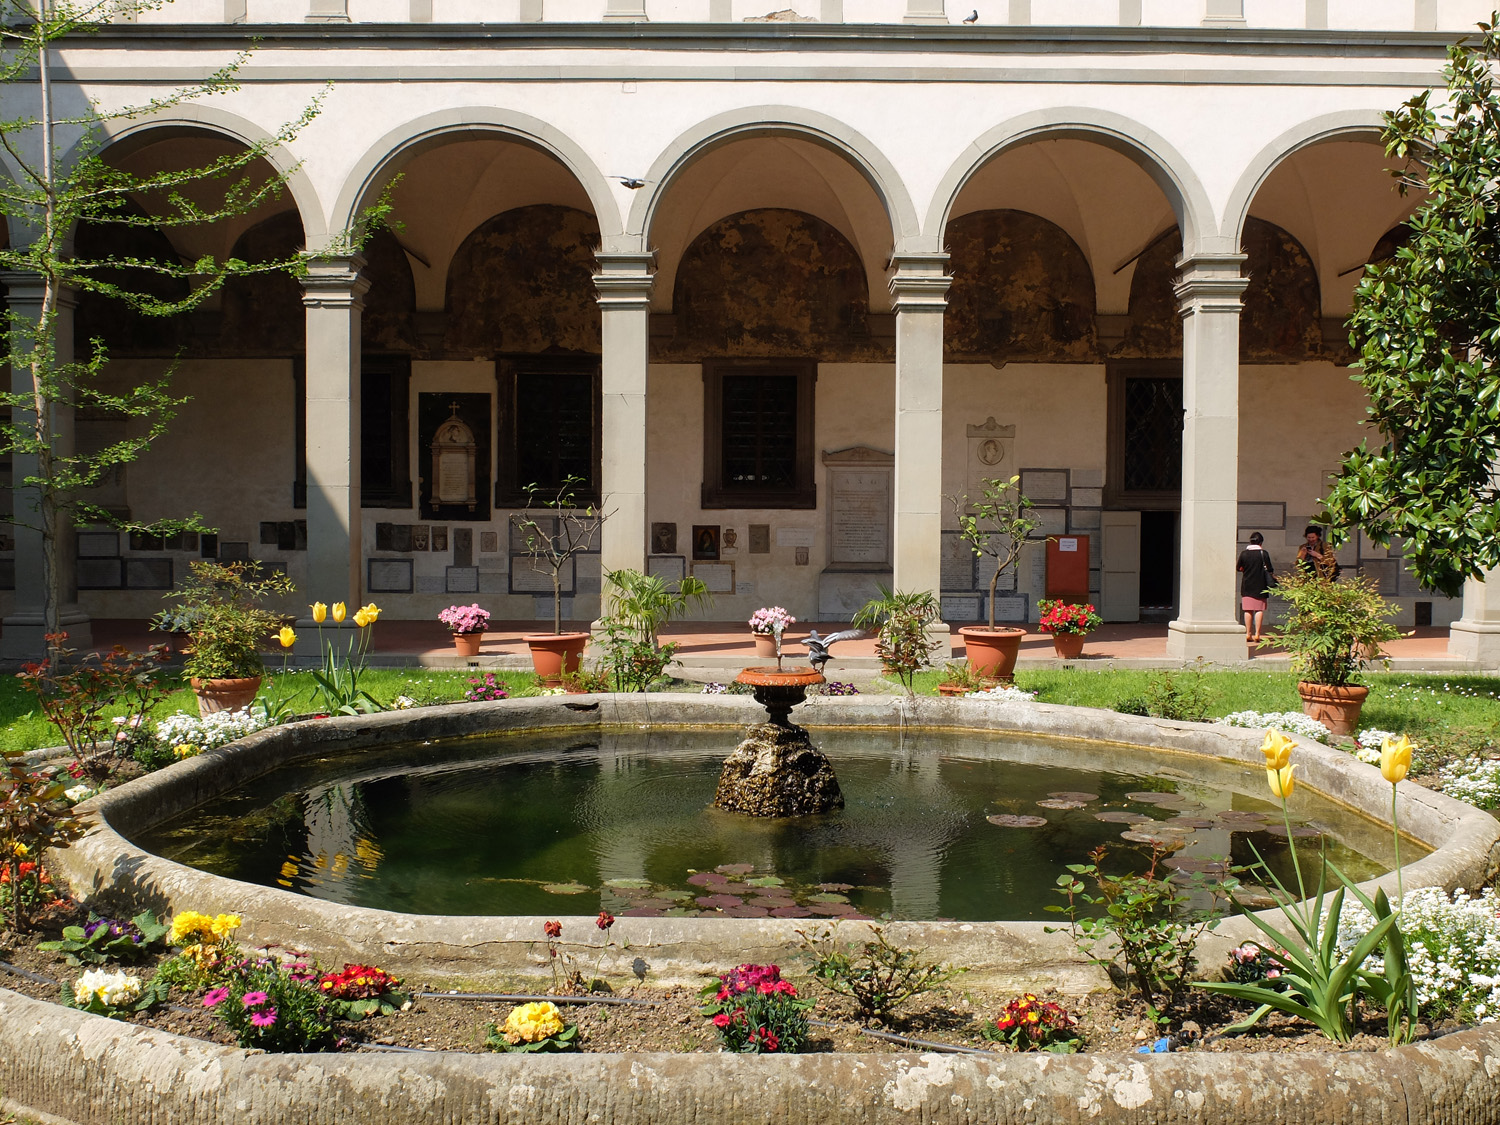 The cloister is complete with a charming fountain and lily pads!